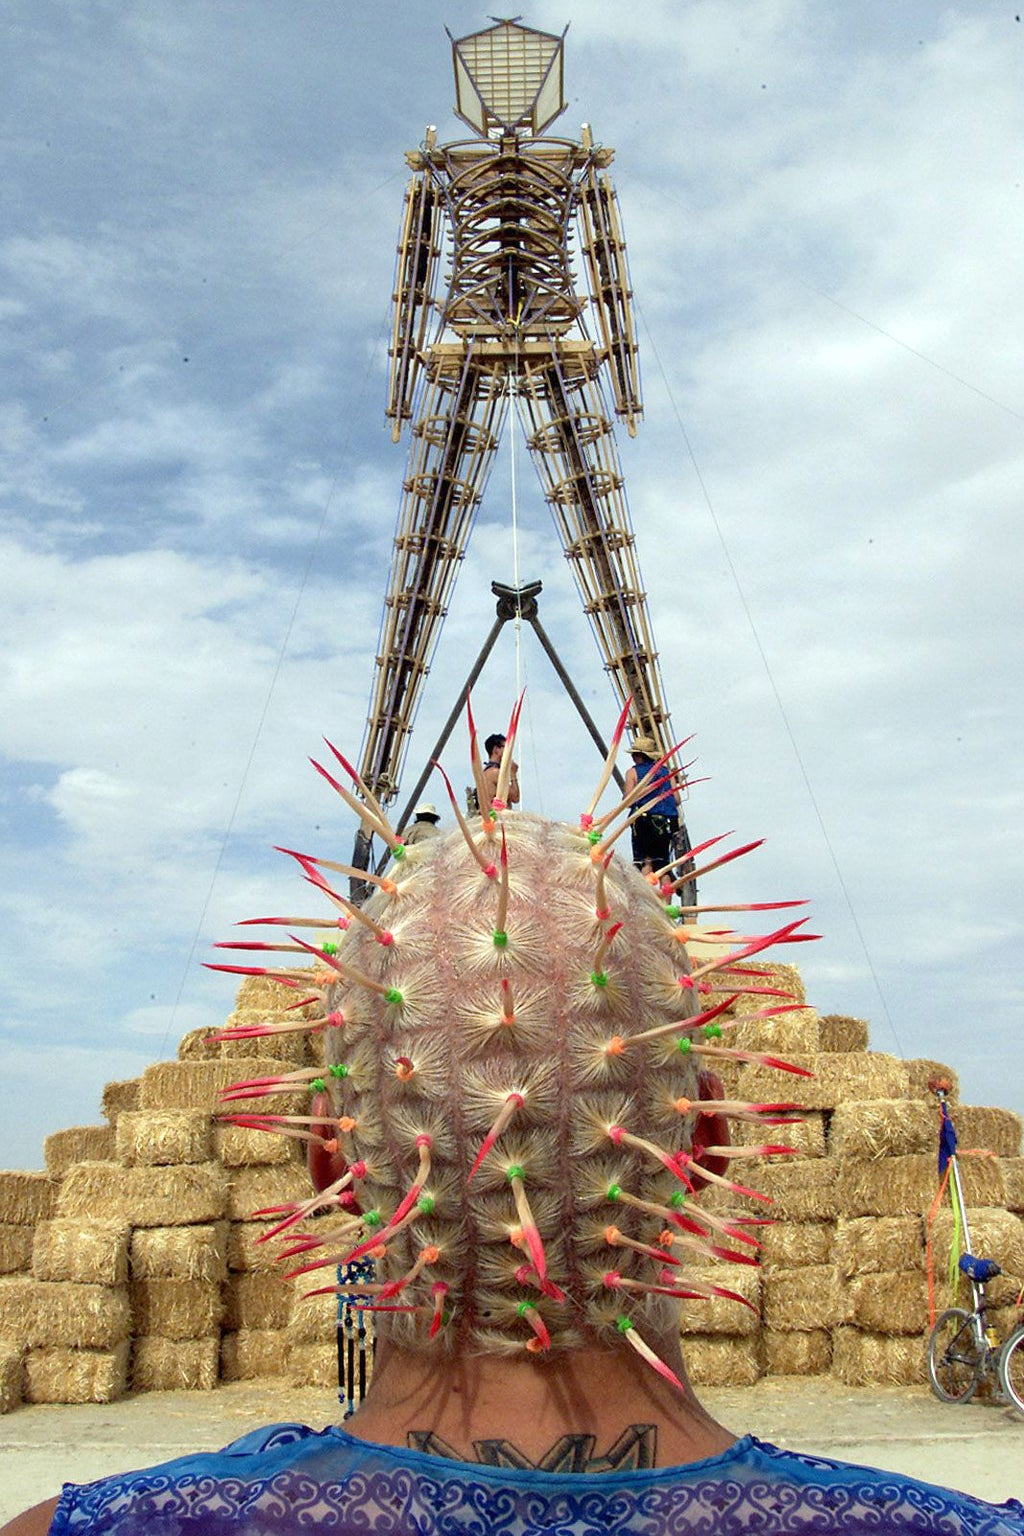 37 Of The Most Insane Pictures Ever Taken At Burning Man